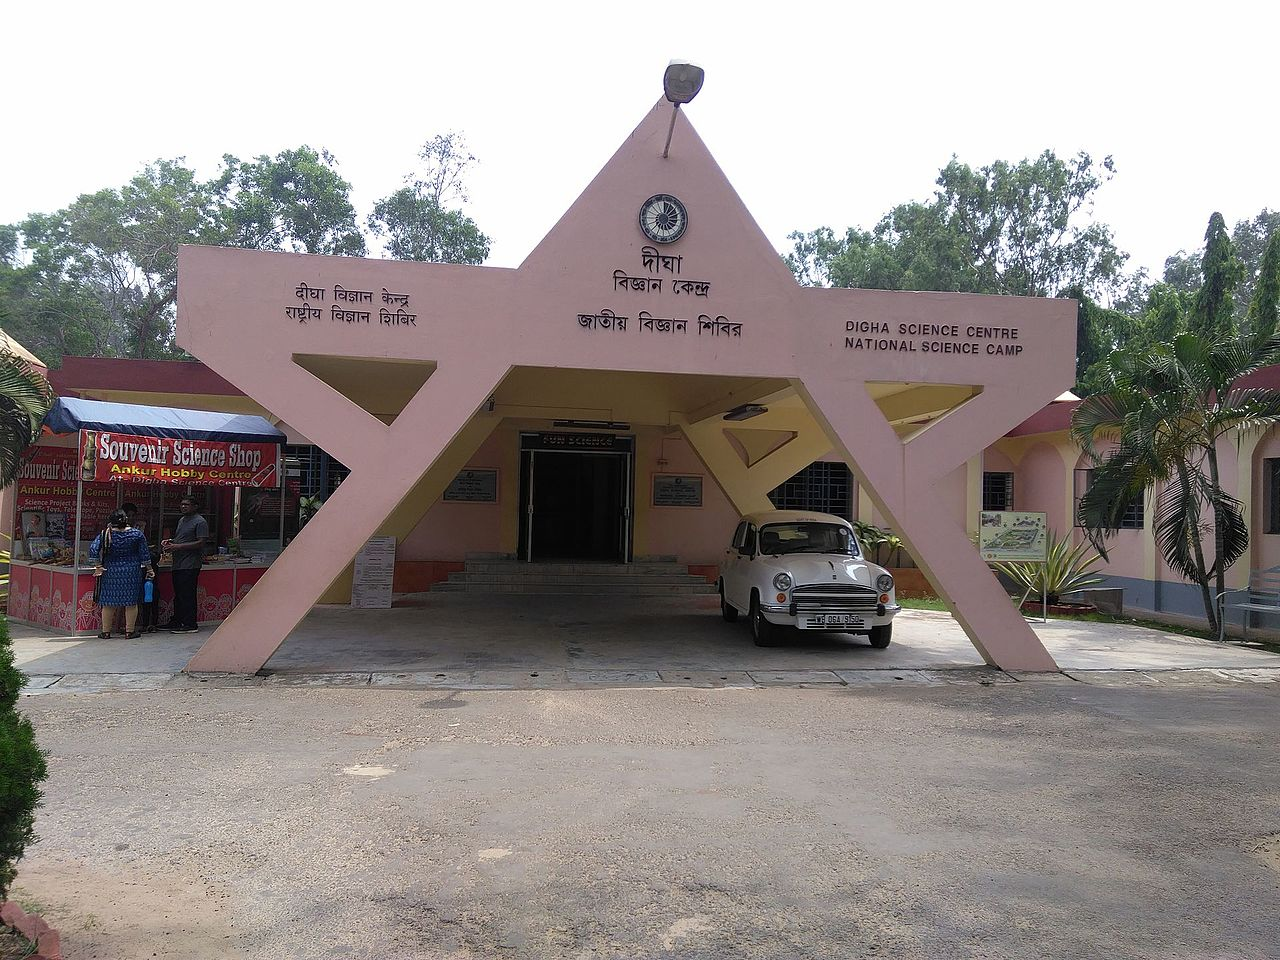 Famous Place to Visit in Digha-Digha Science Center and National Science Camp